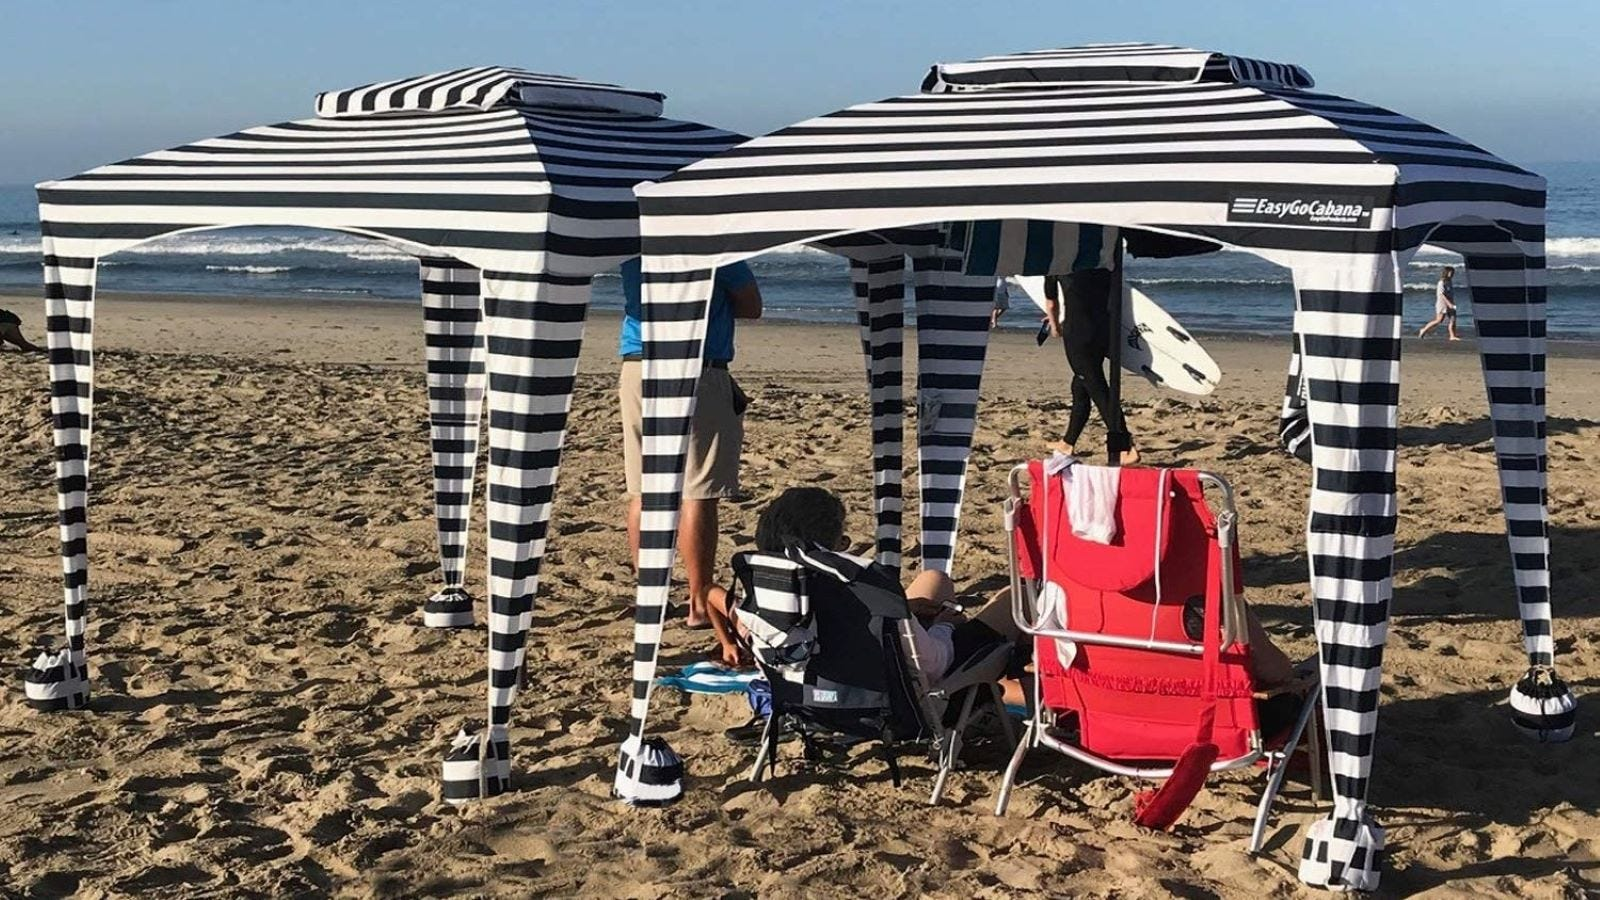 Two people at the beach under two blue-and-white striped EasyGo Cabanas.